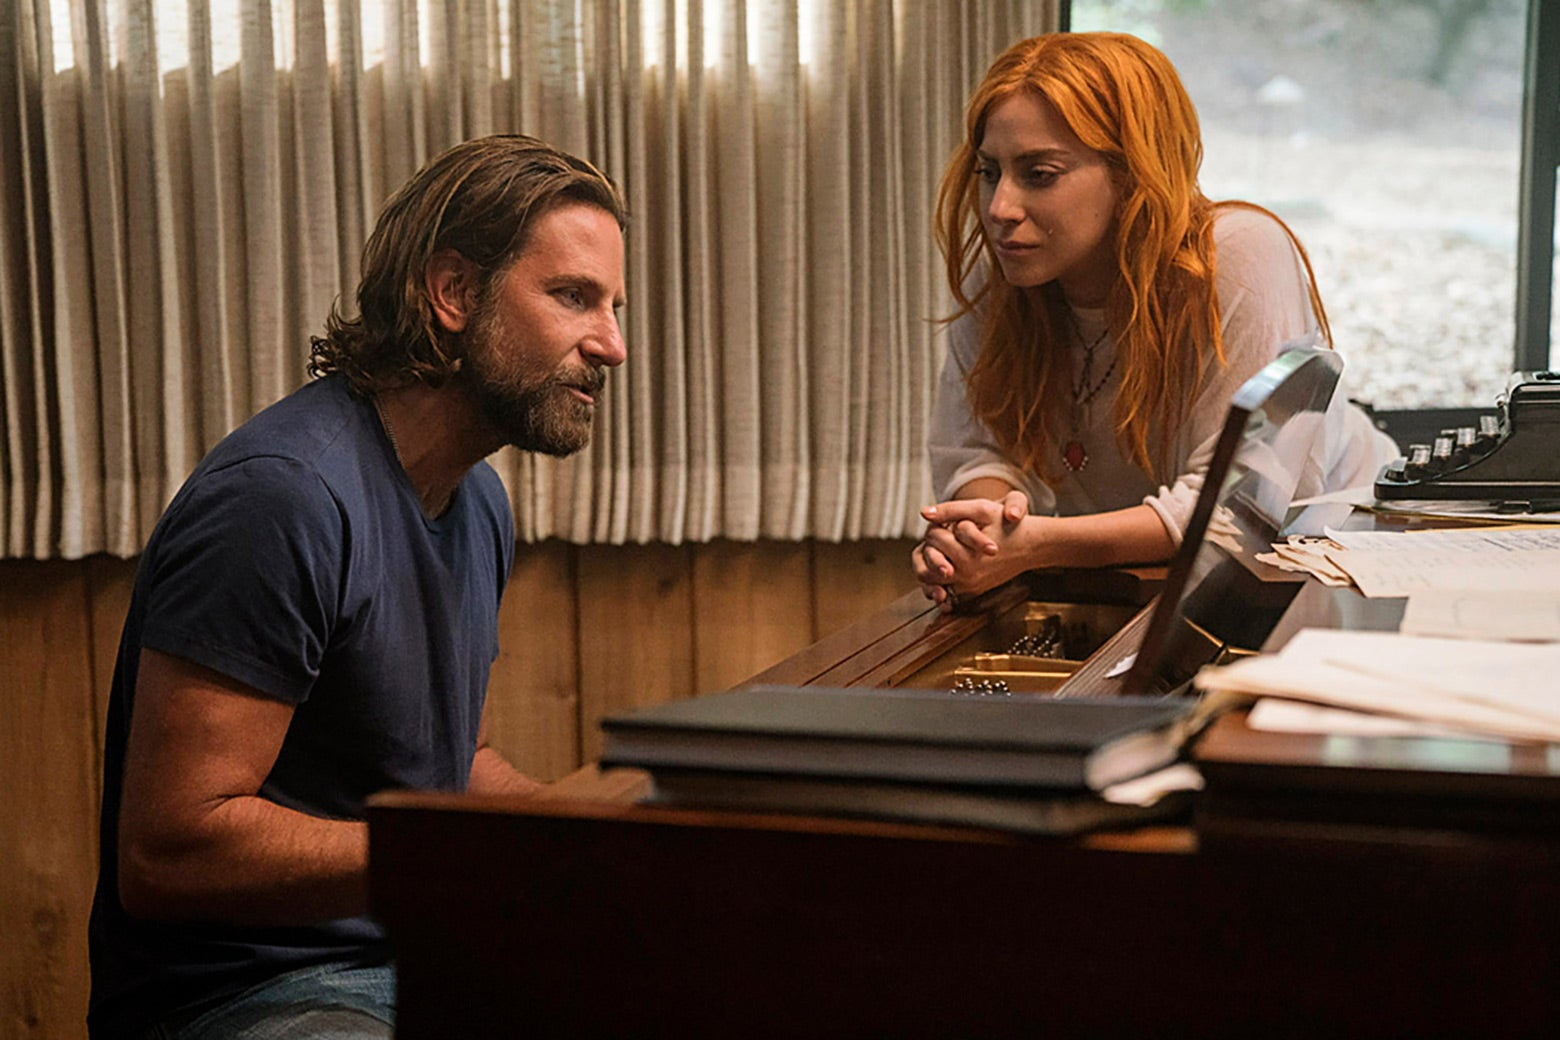 Bradley Cooper plays at the piano as Lady Gaga leans over.